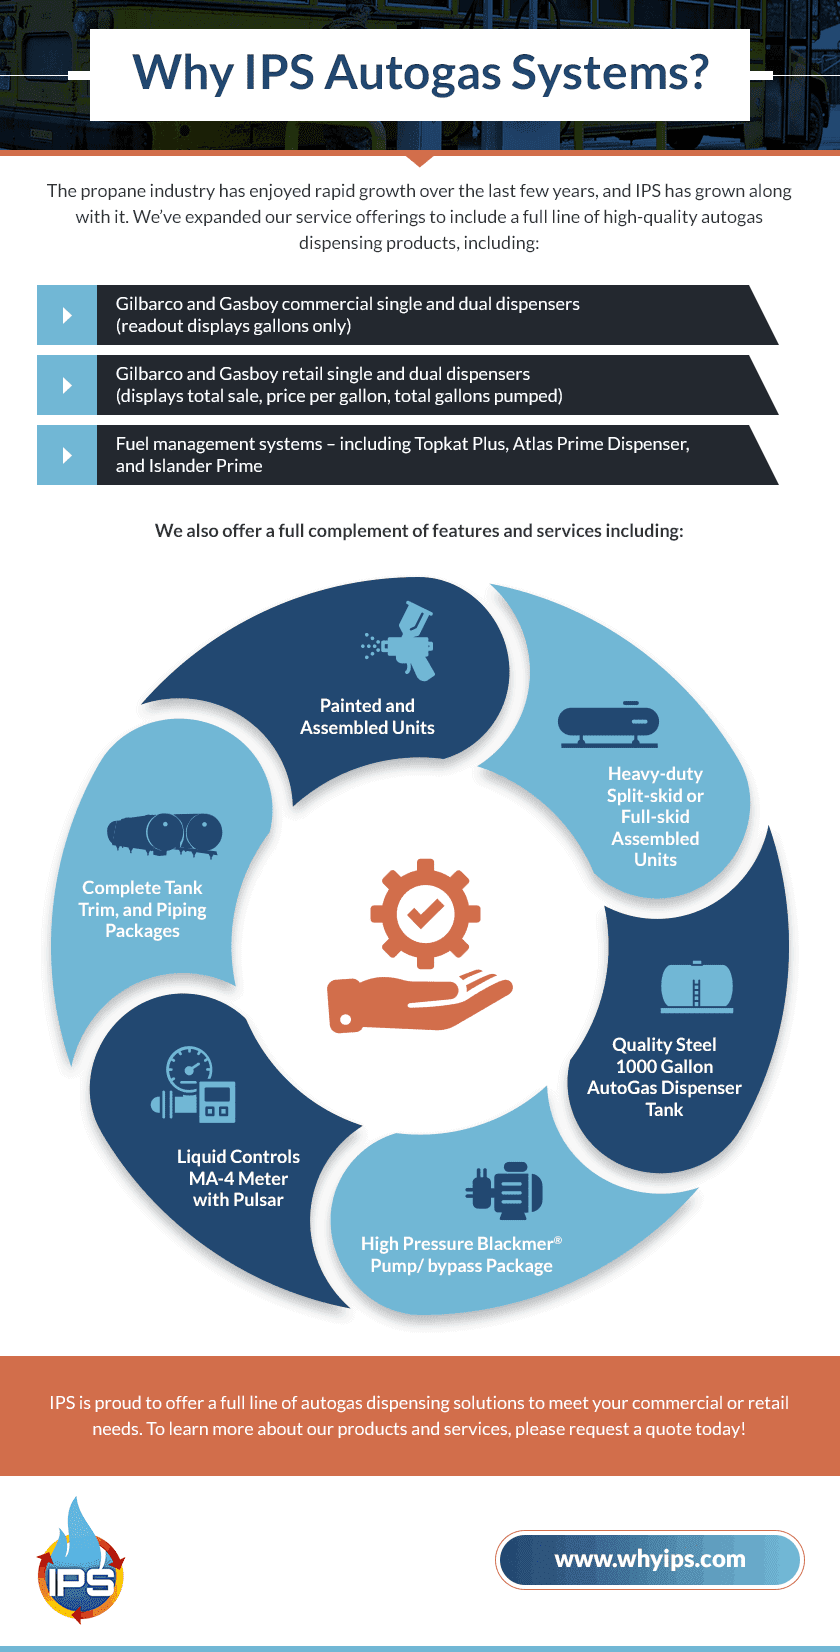 An infographic explaining the benefits of IPS' Autogas systems